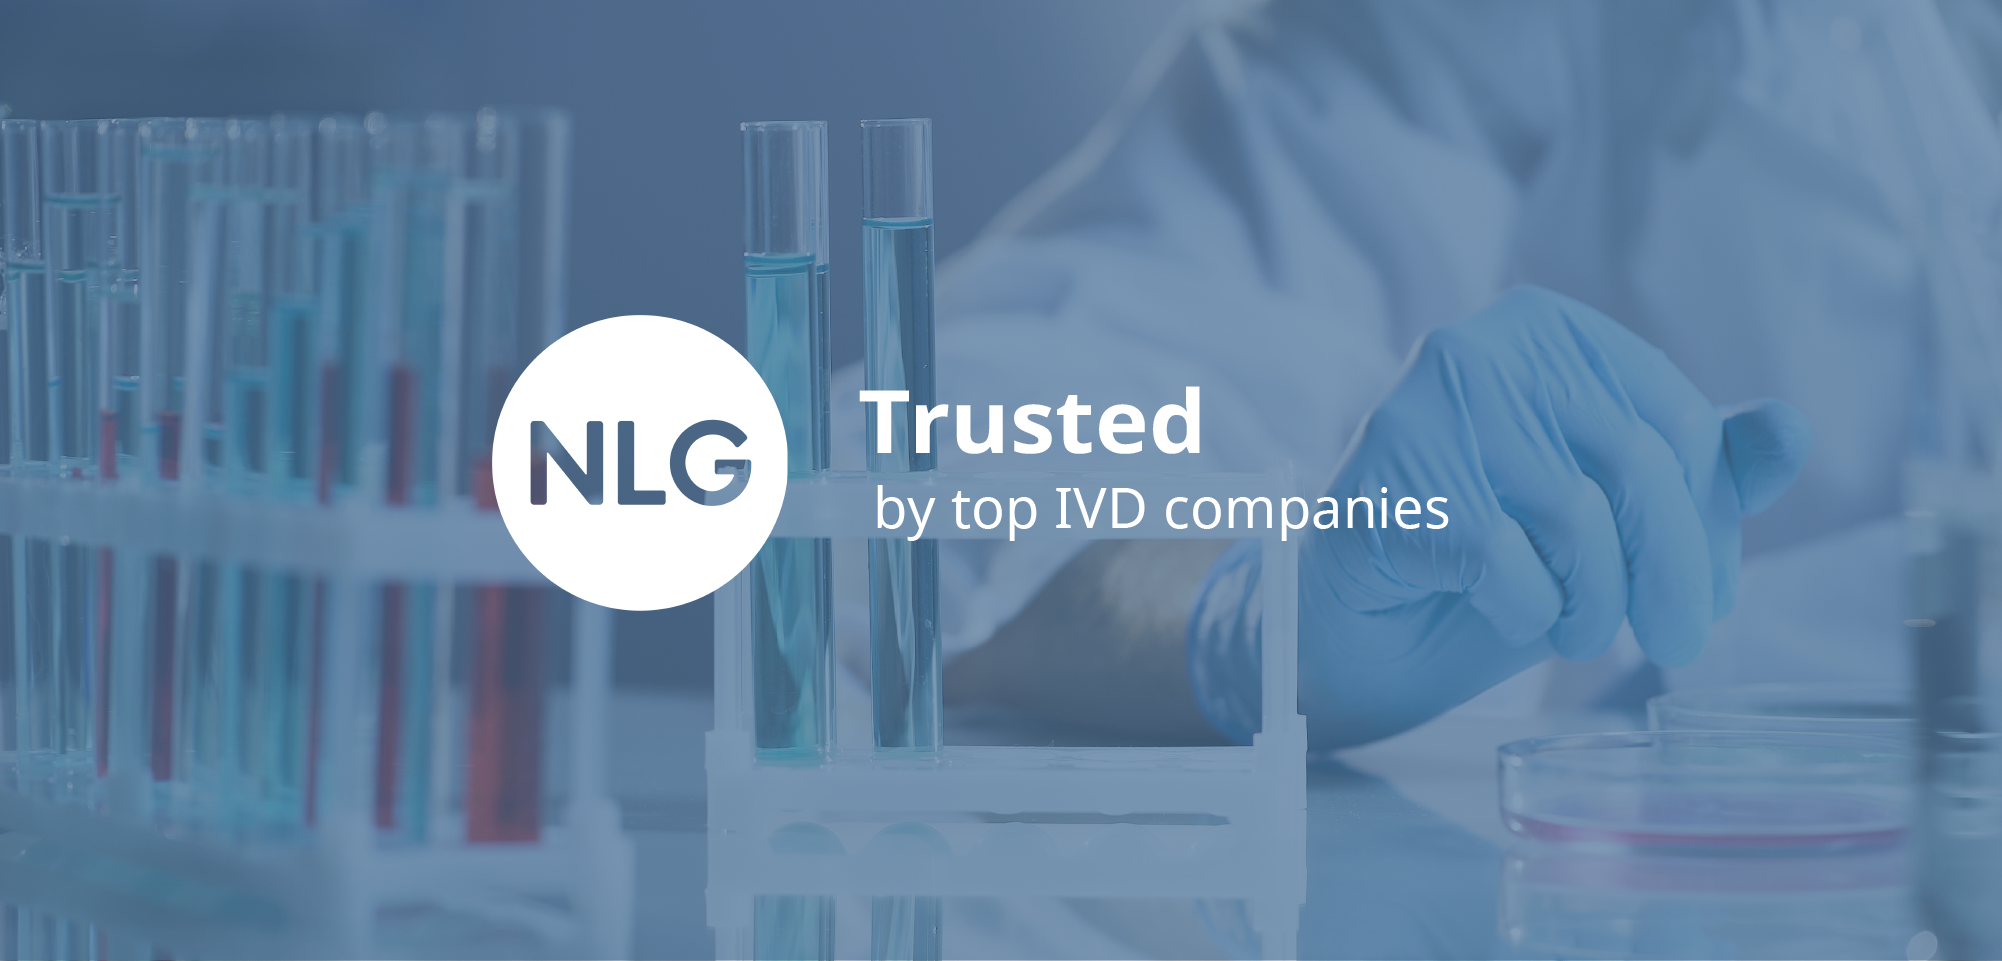 NLG - Trusted by top IVD companies